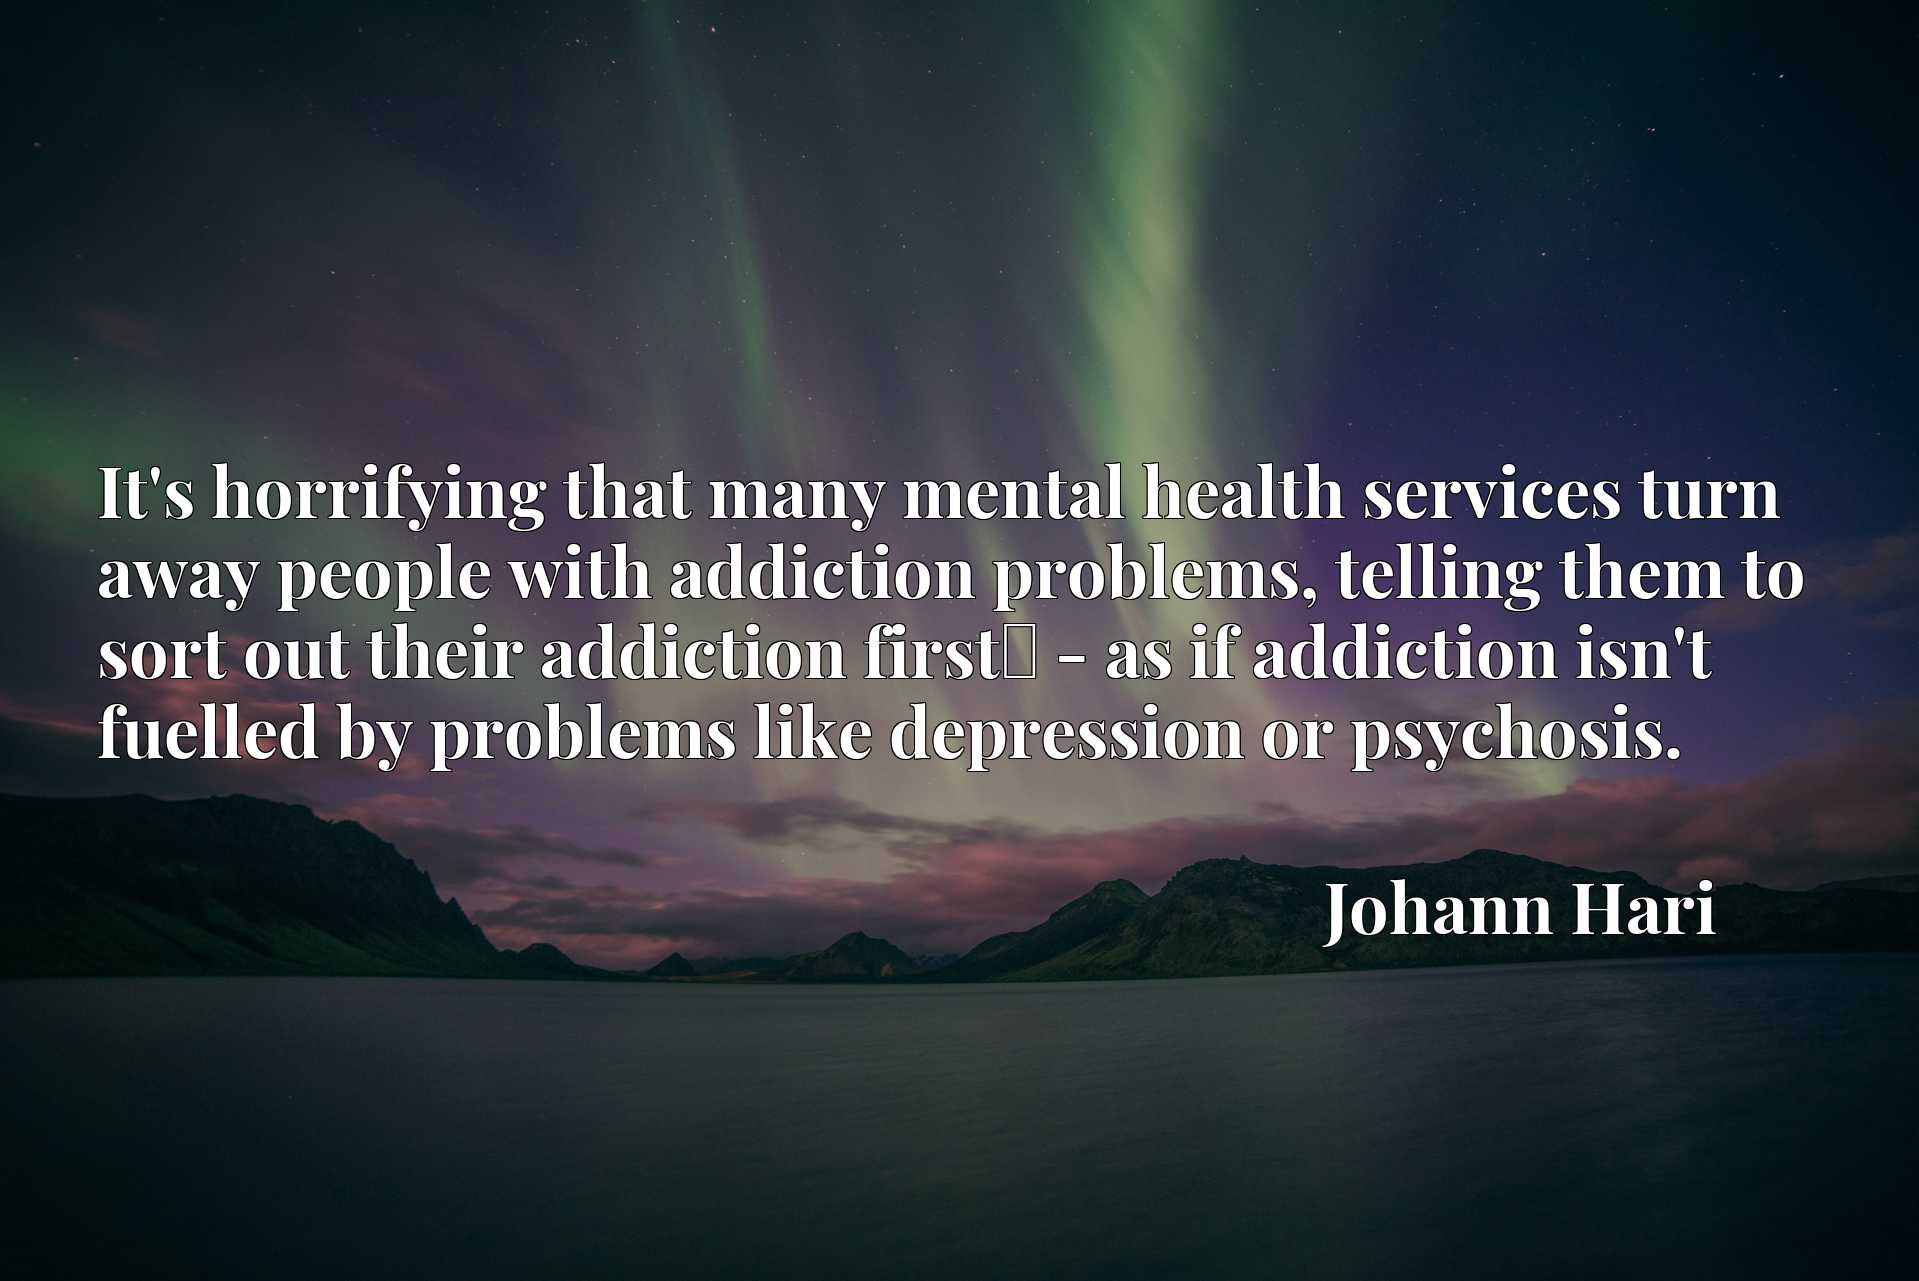 It's horrifying that many mental health services turn away people with addiction problems, telling them to sort out their addiction firstx9d - as if addiction isn't fuelled by problems like depression or psychosis.